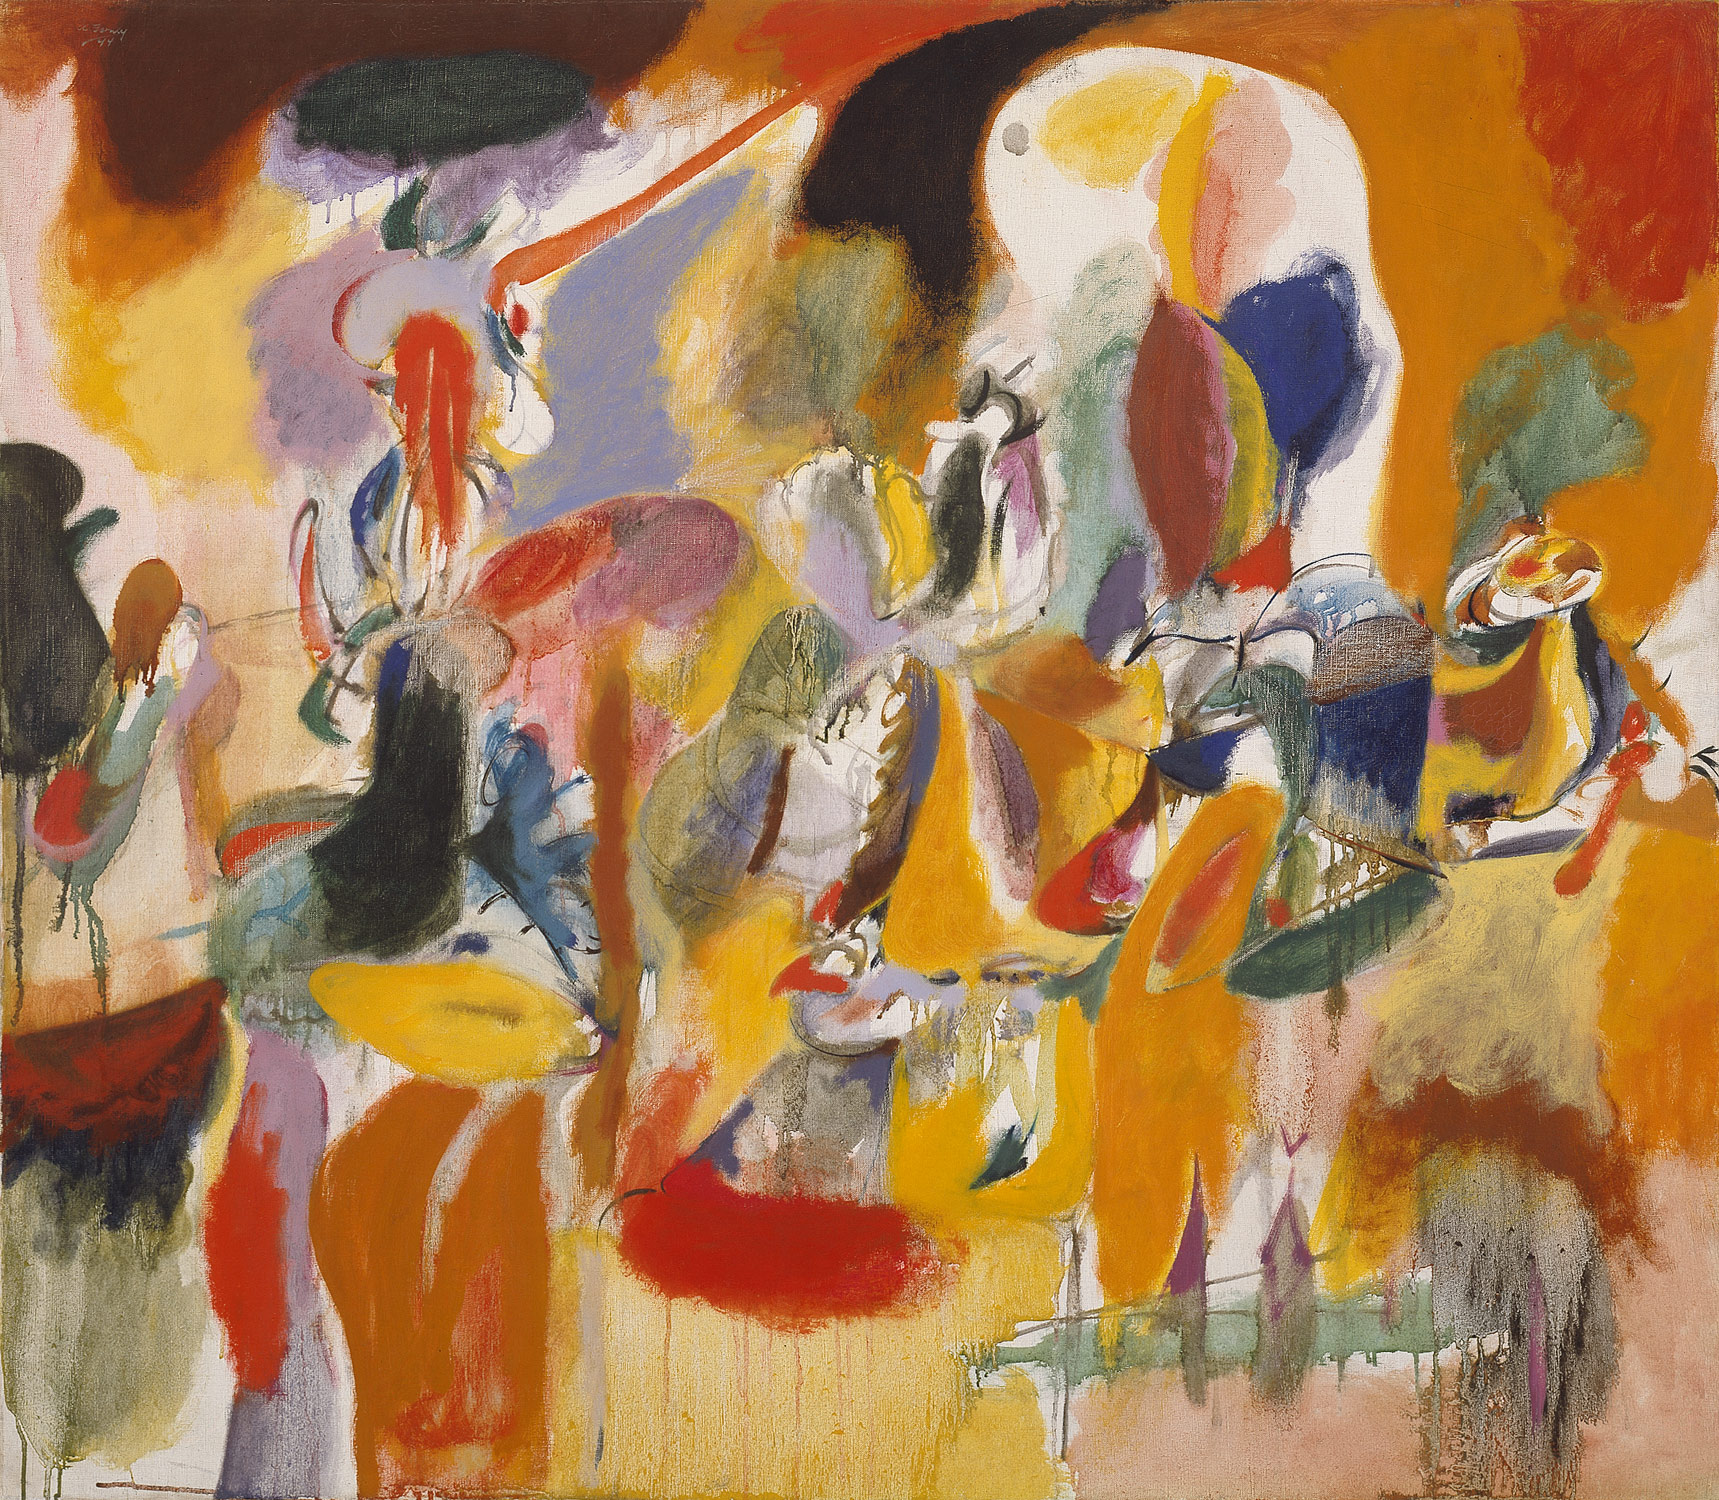 Arshile Gorky, Water of the Flowery Mill, 1944.jpg